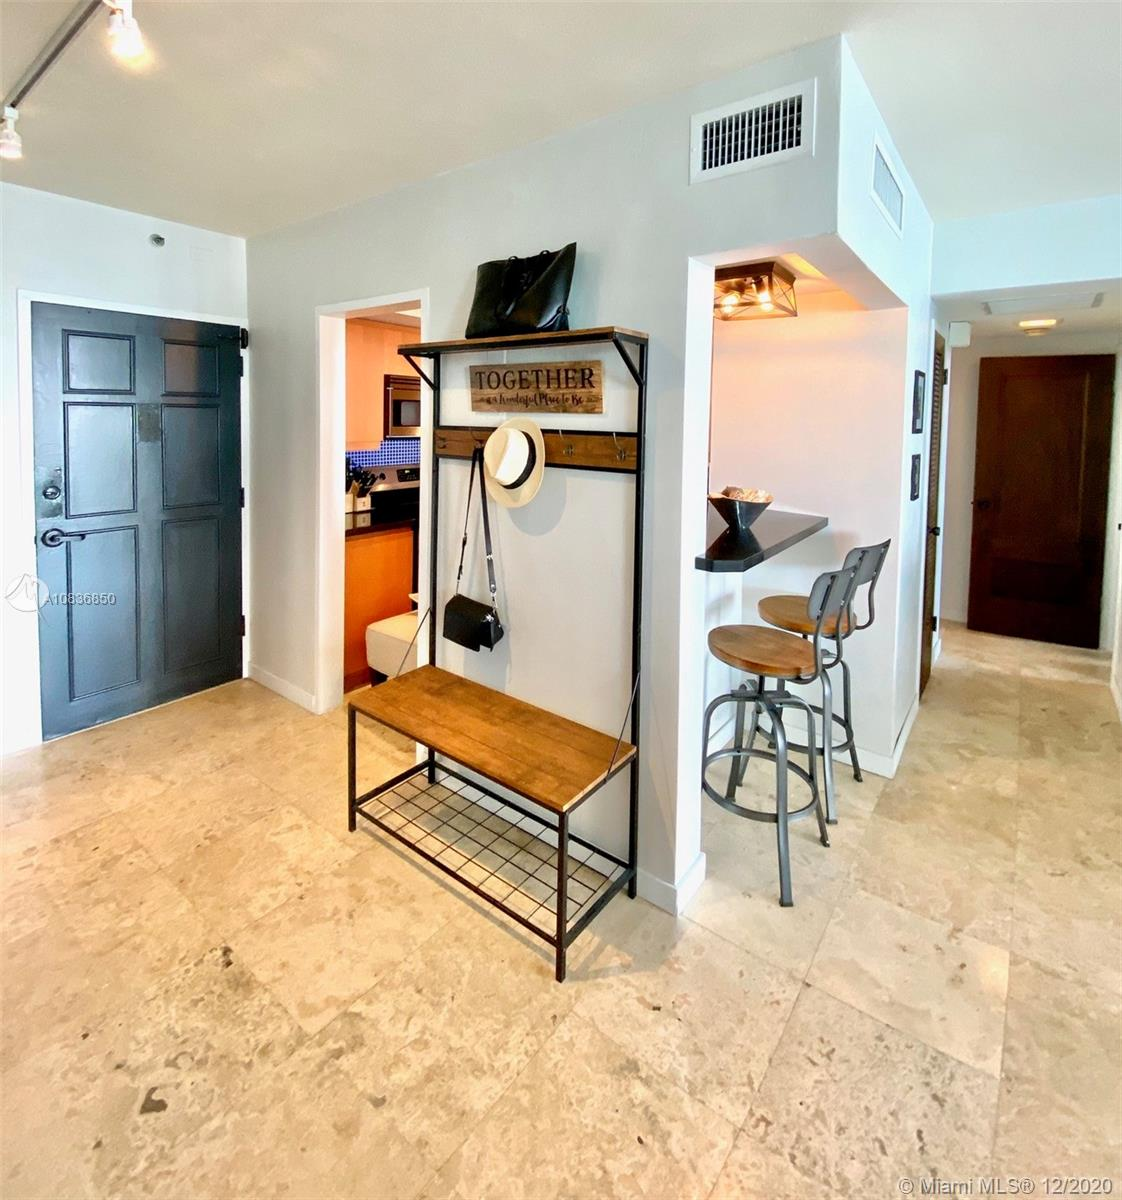 Mirador South #623 - 1000 West Ave #623, Miami Beach, FL 33139